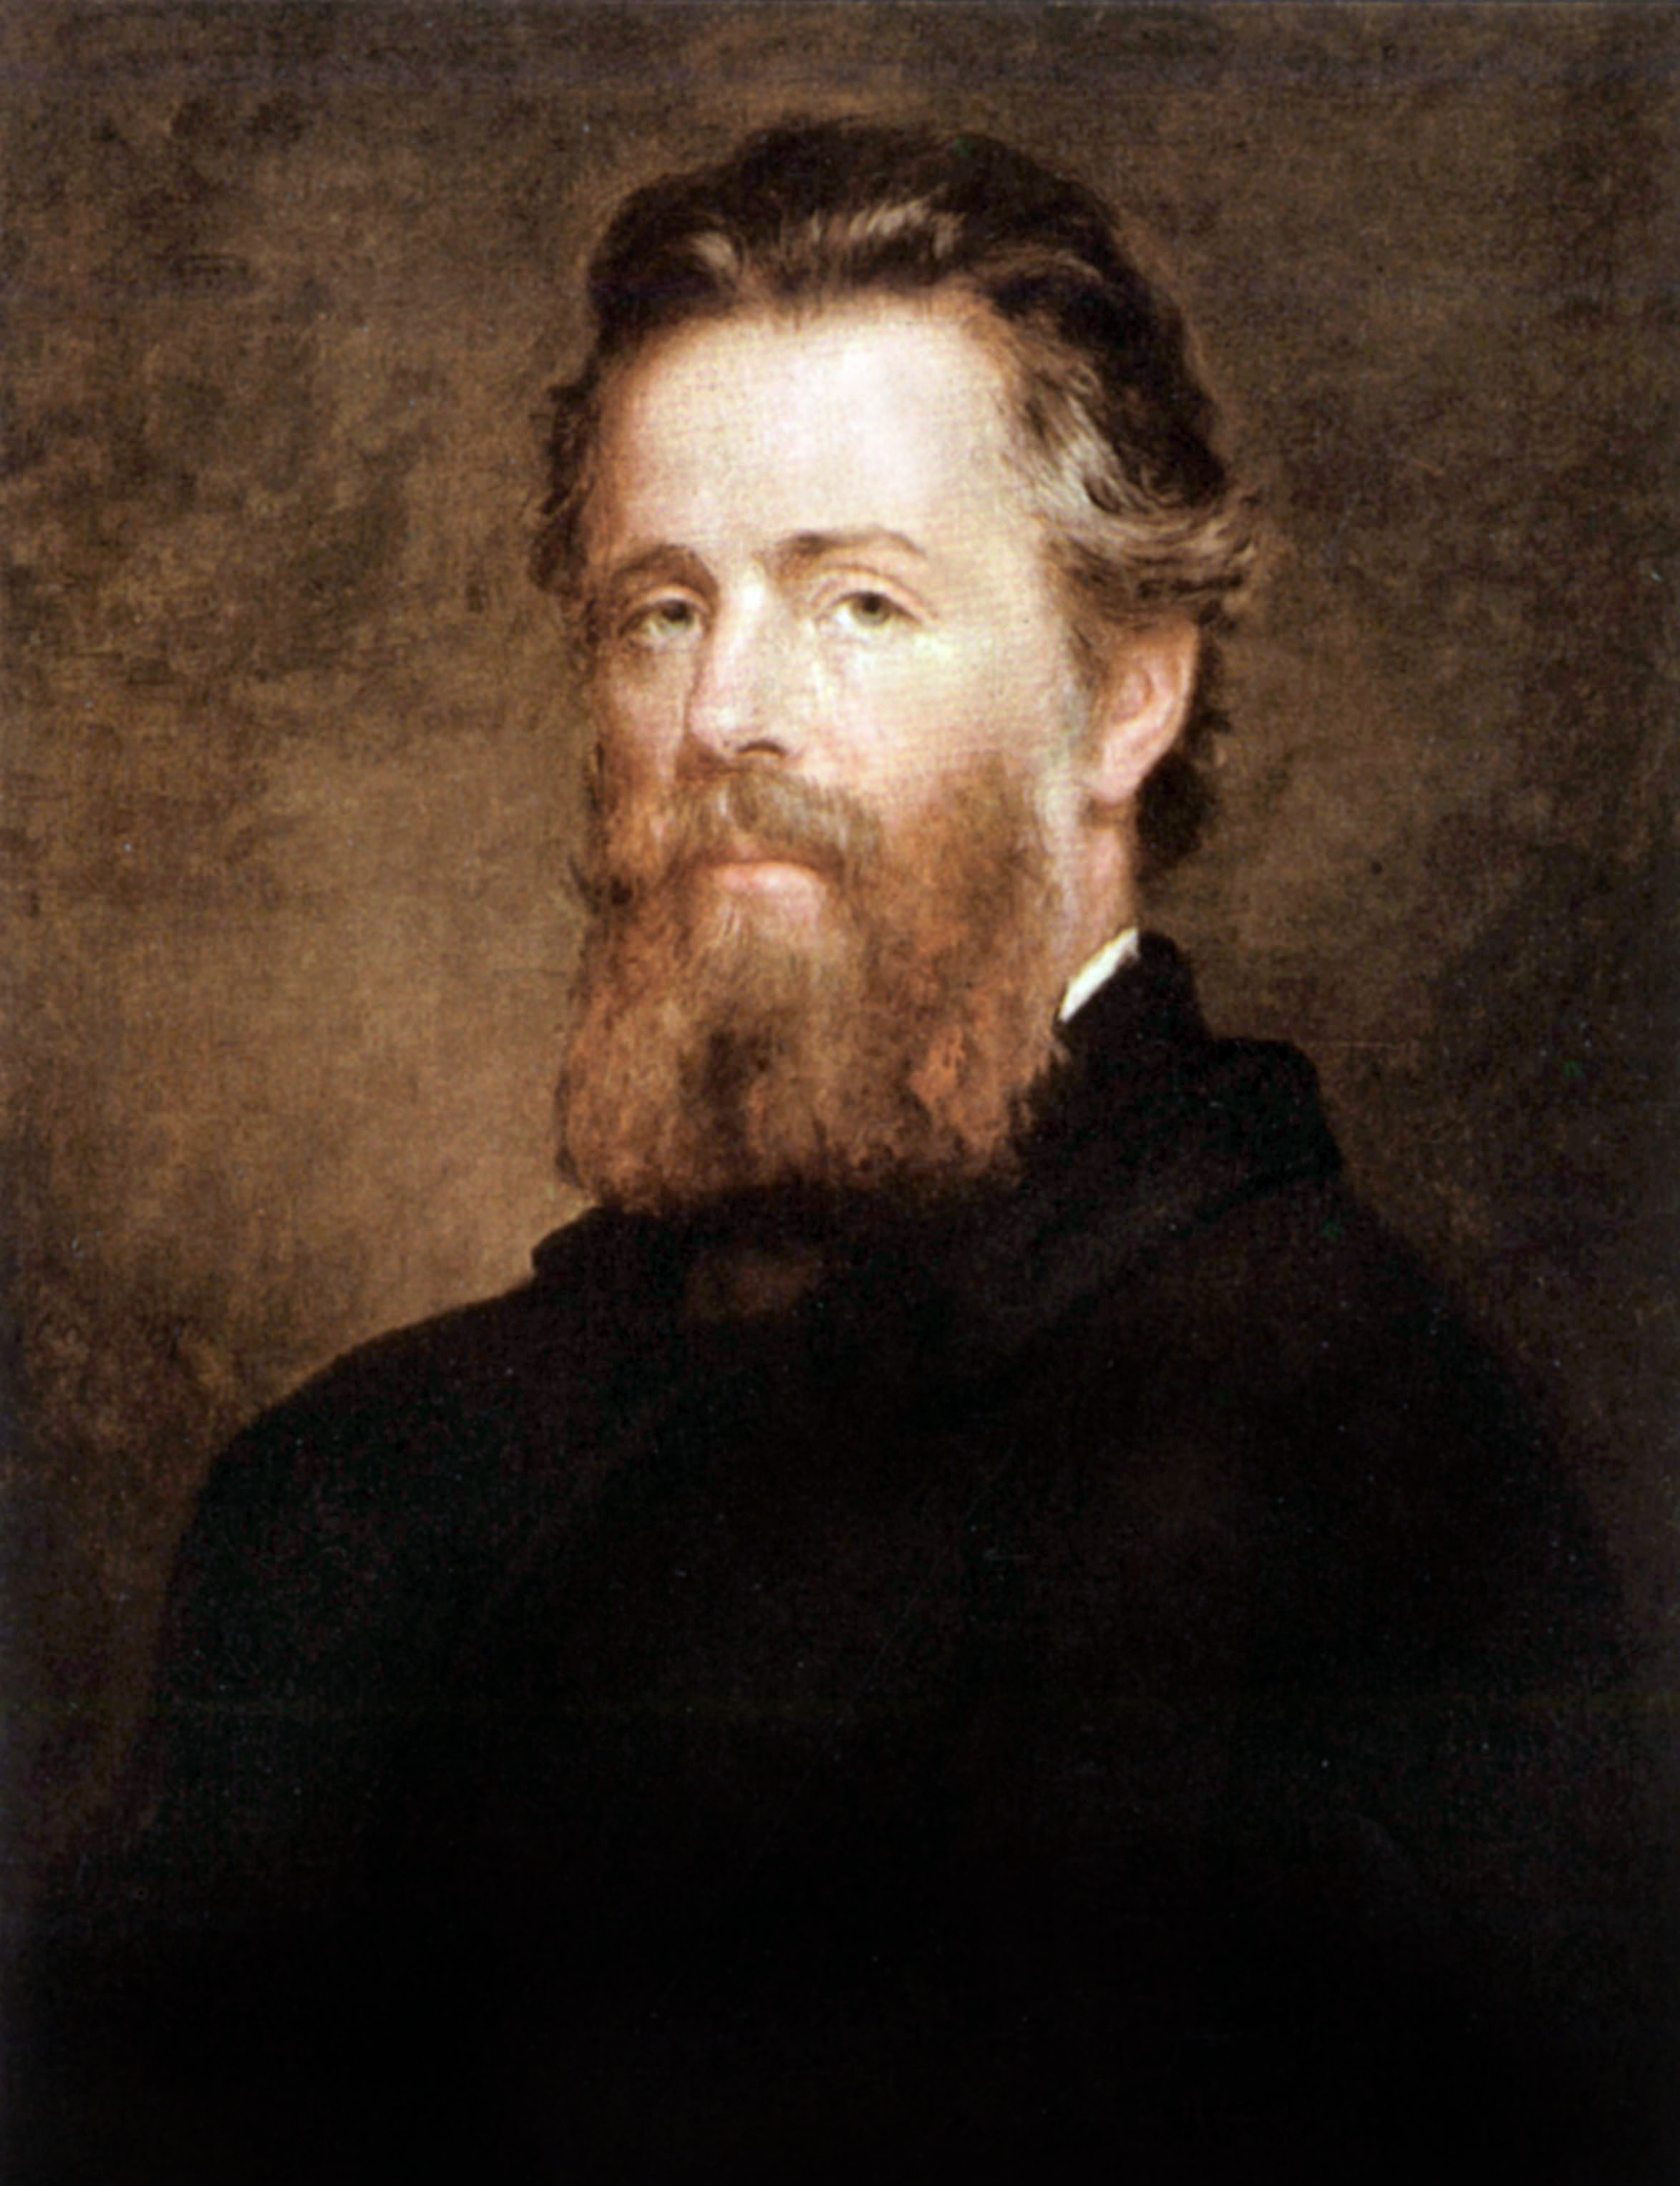 famous authors day jobs lists herman melville painted by joseph eaton credit apic getty images